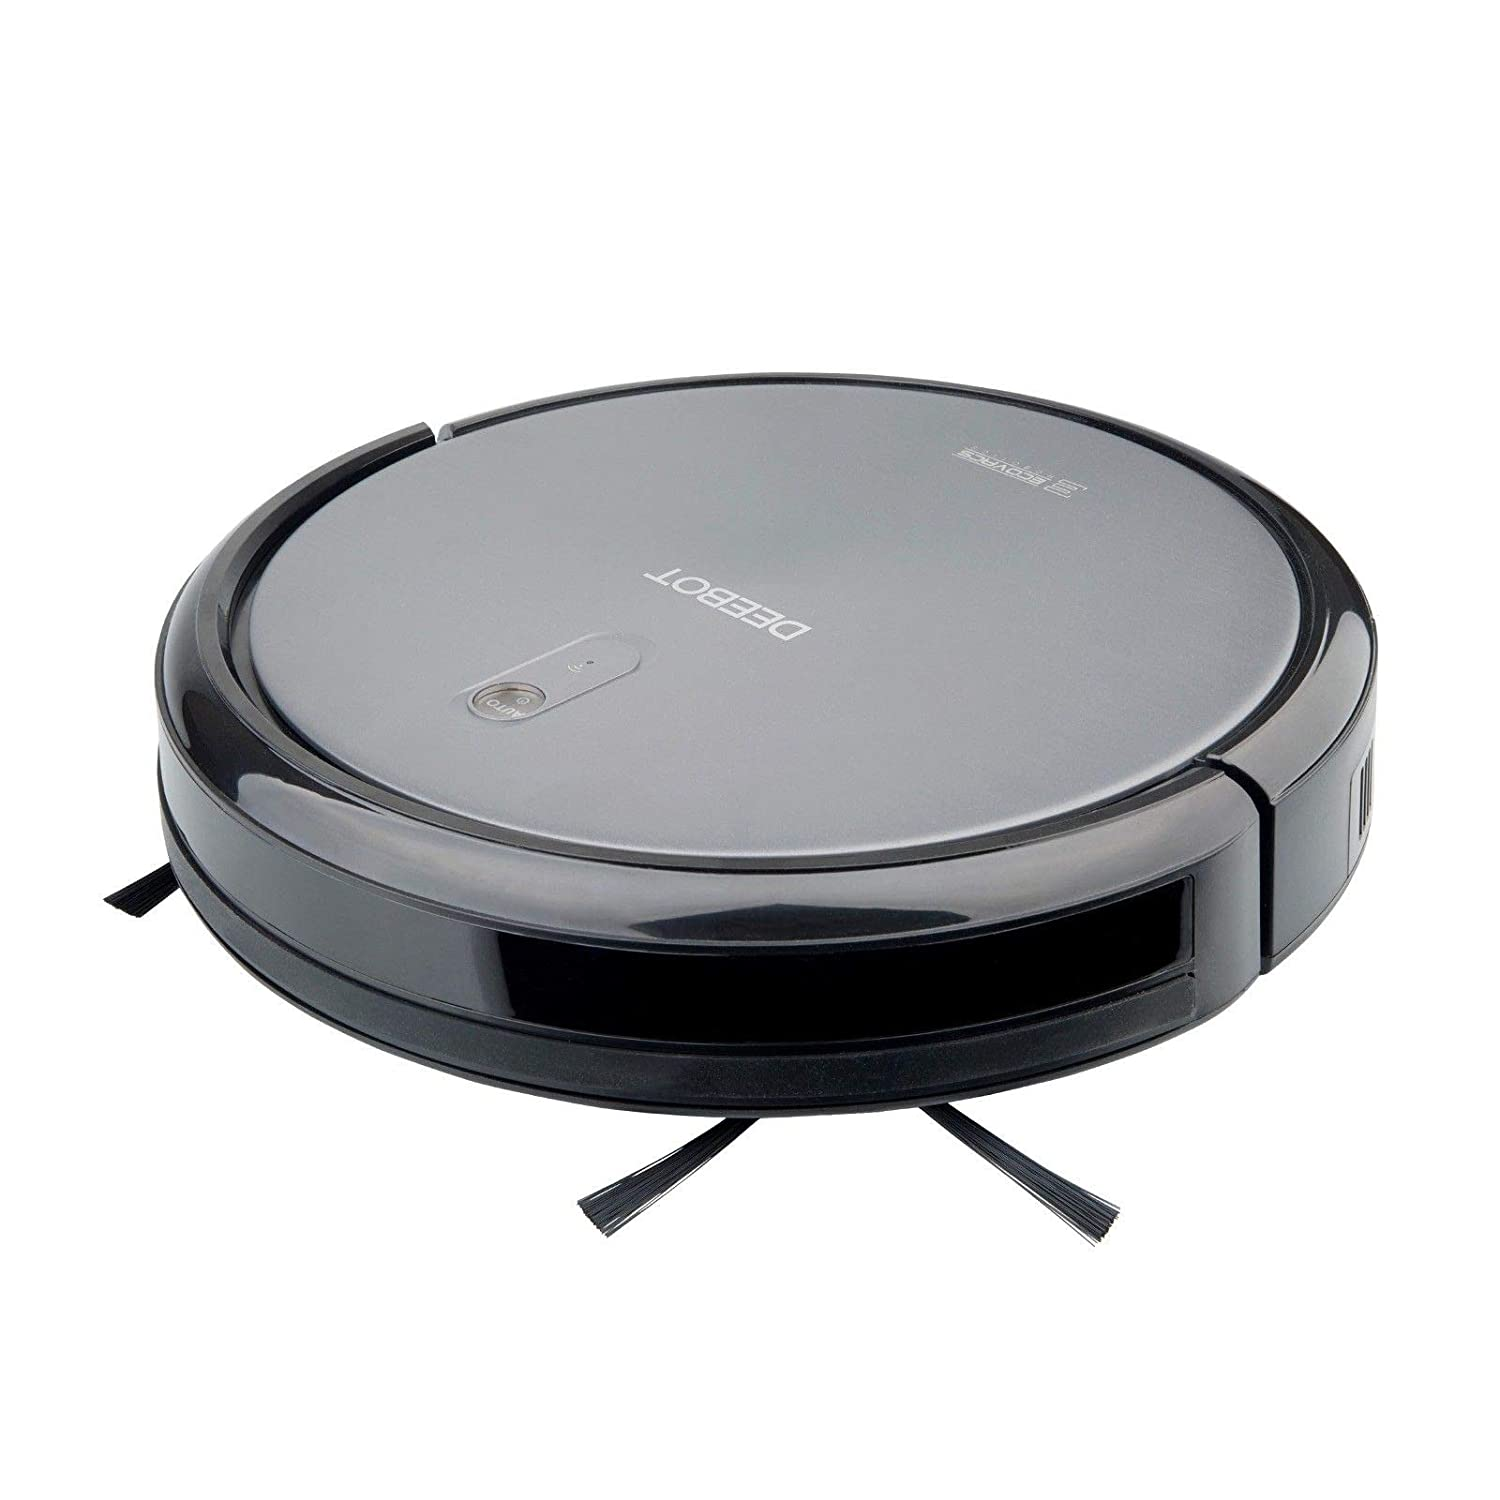 Amazon.com - Robotic Vacuum Cleaner with 3 Cleaning Modes -